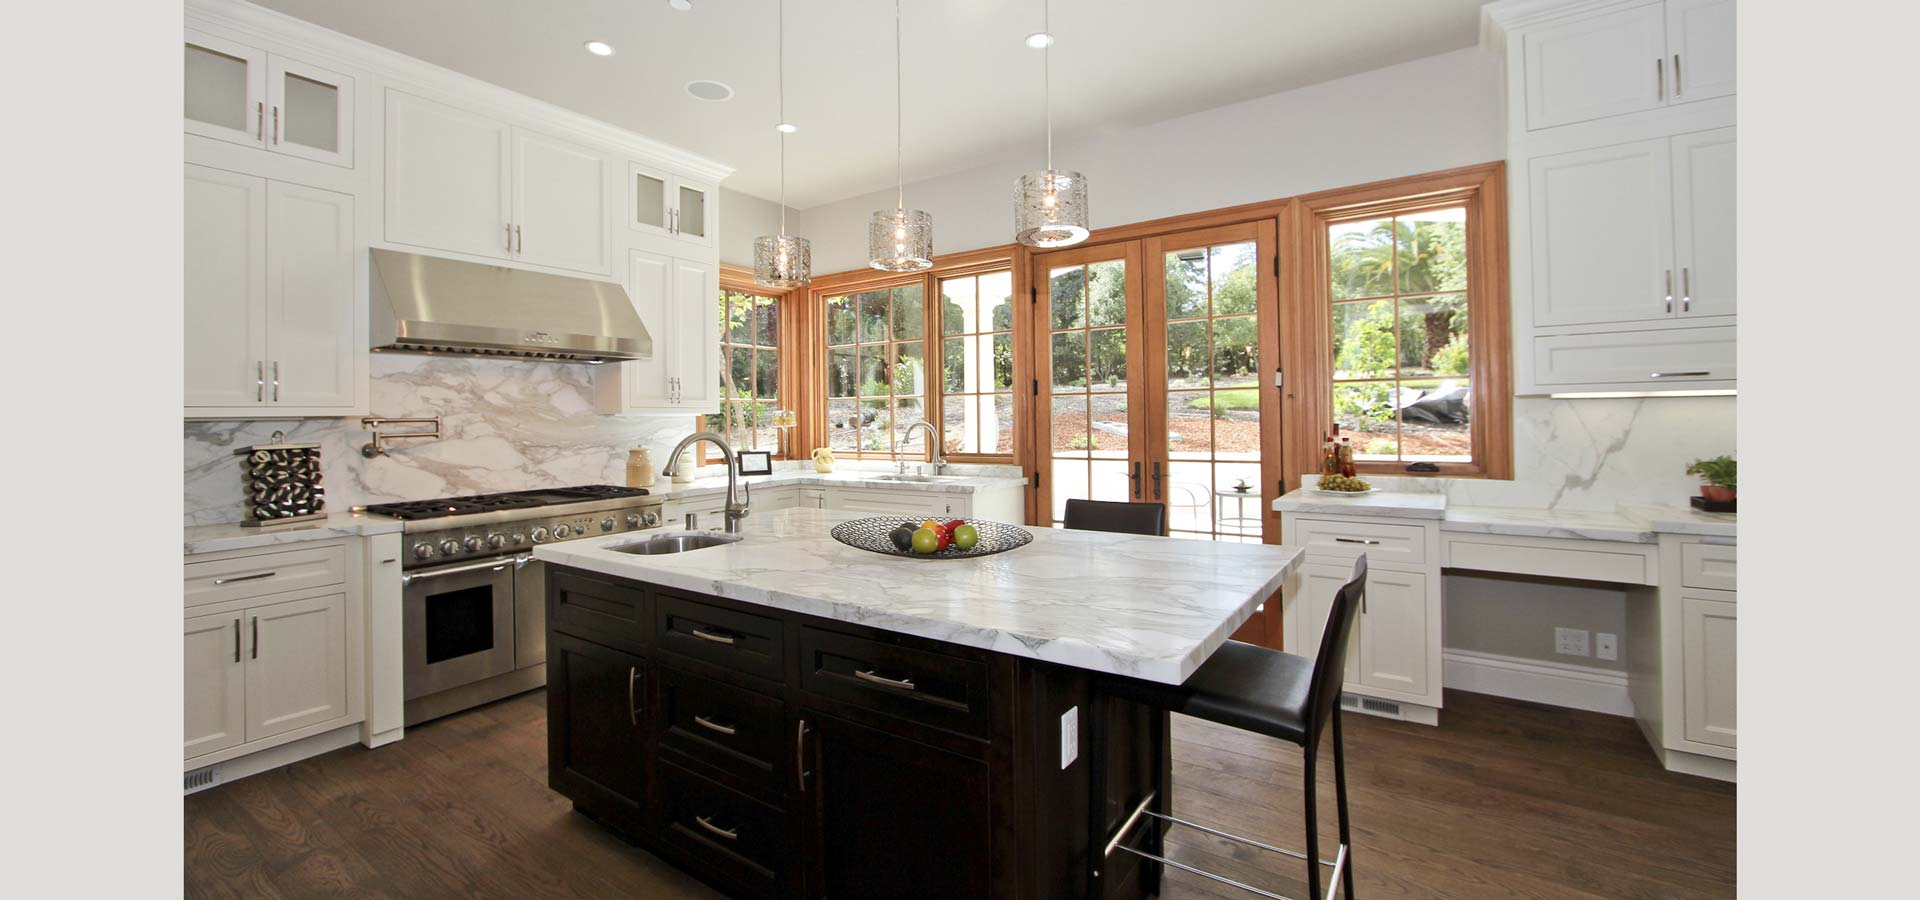 Atherton residence kitchen